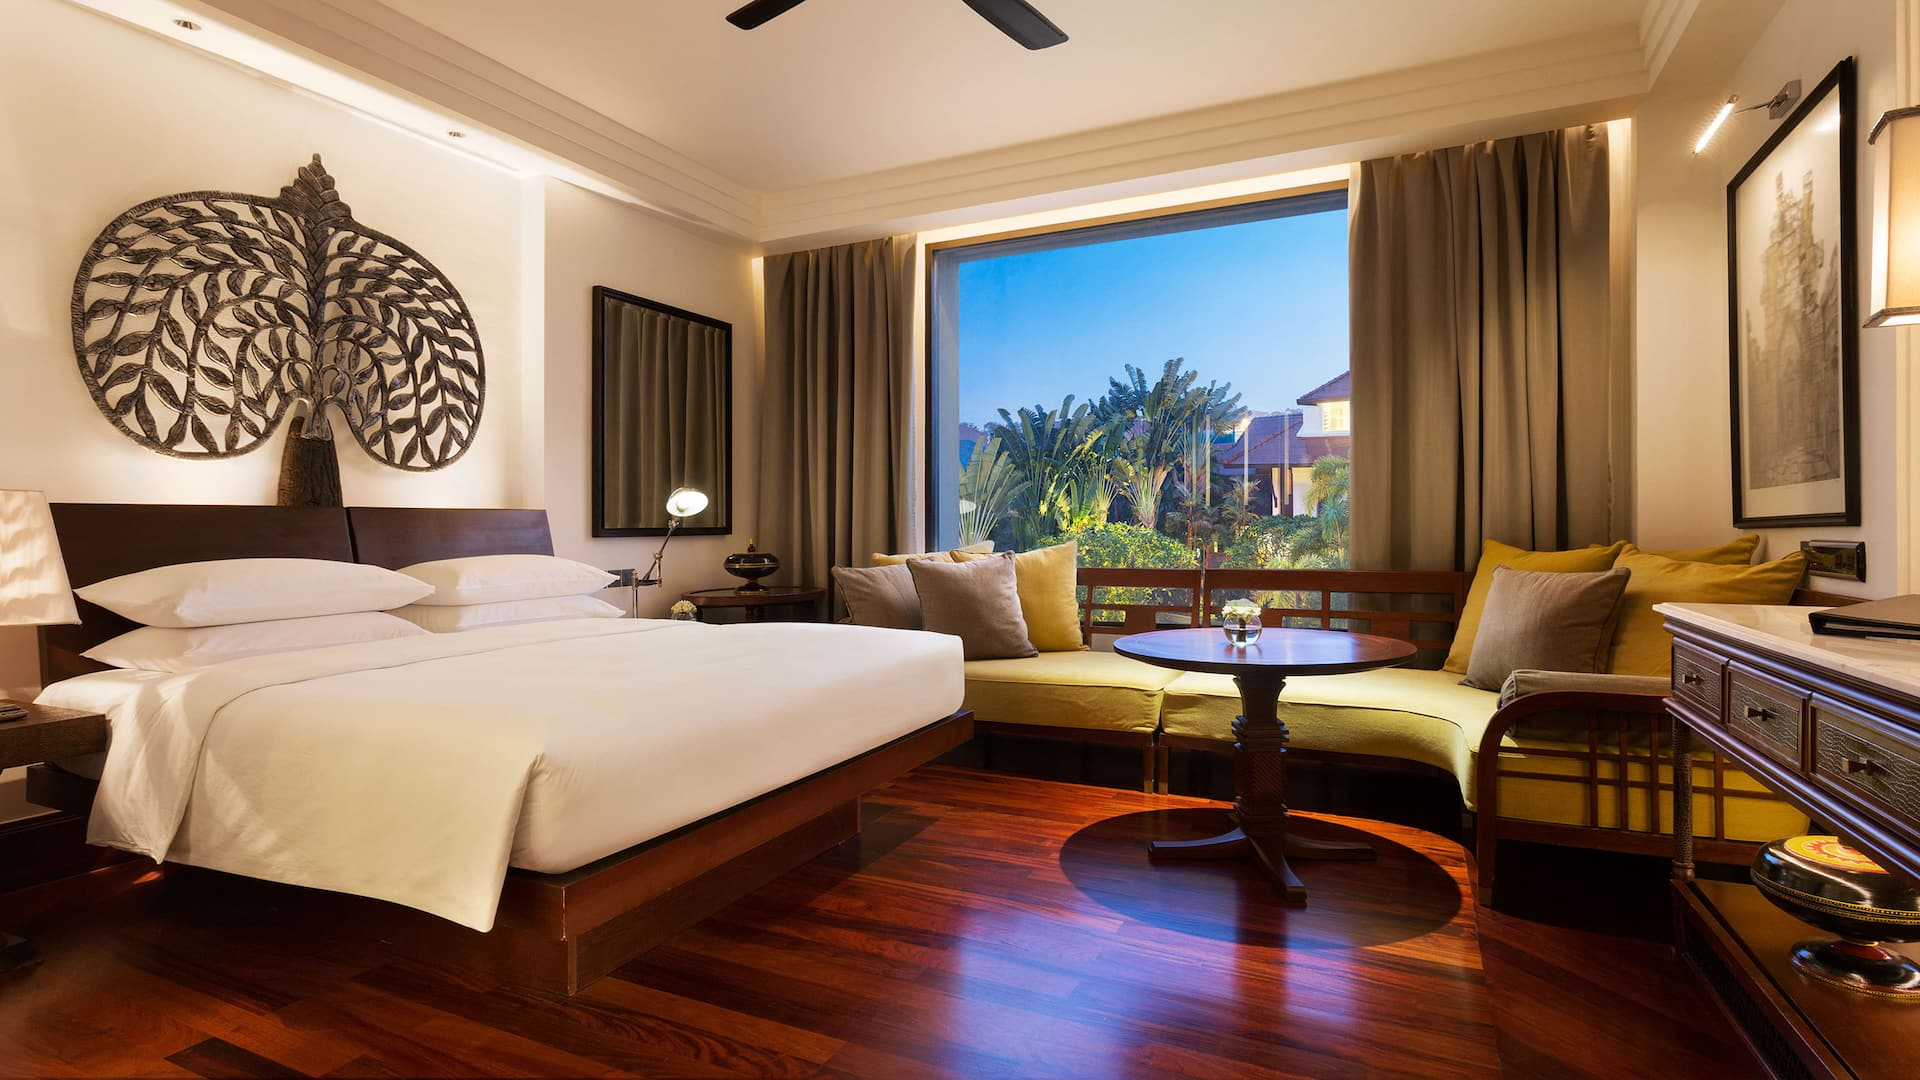 Luxury 5-star hotel in Siem Reap Room